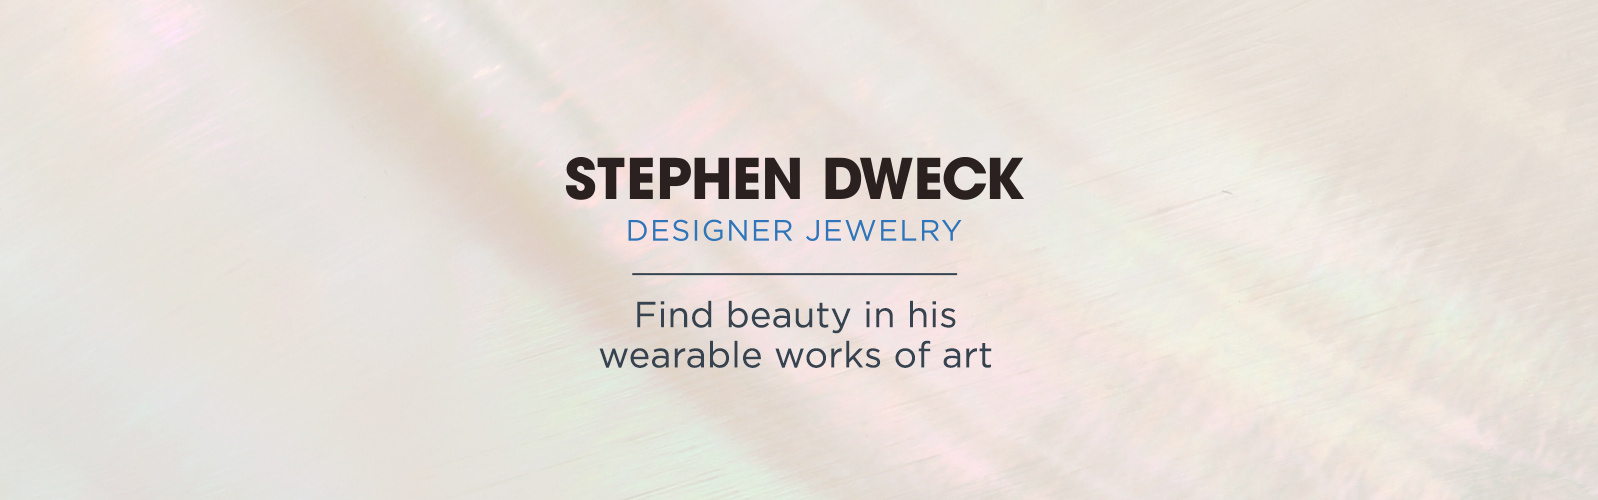 Stephen Dweck. Find beauty in his wearable works of art